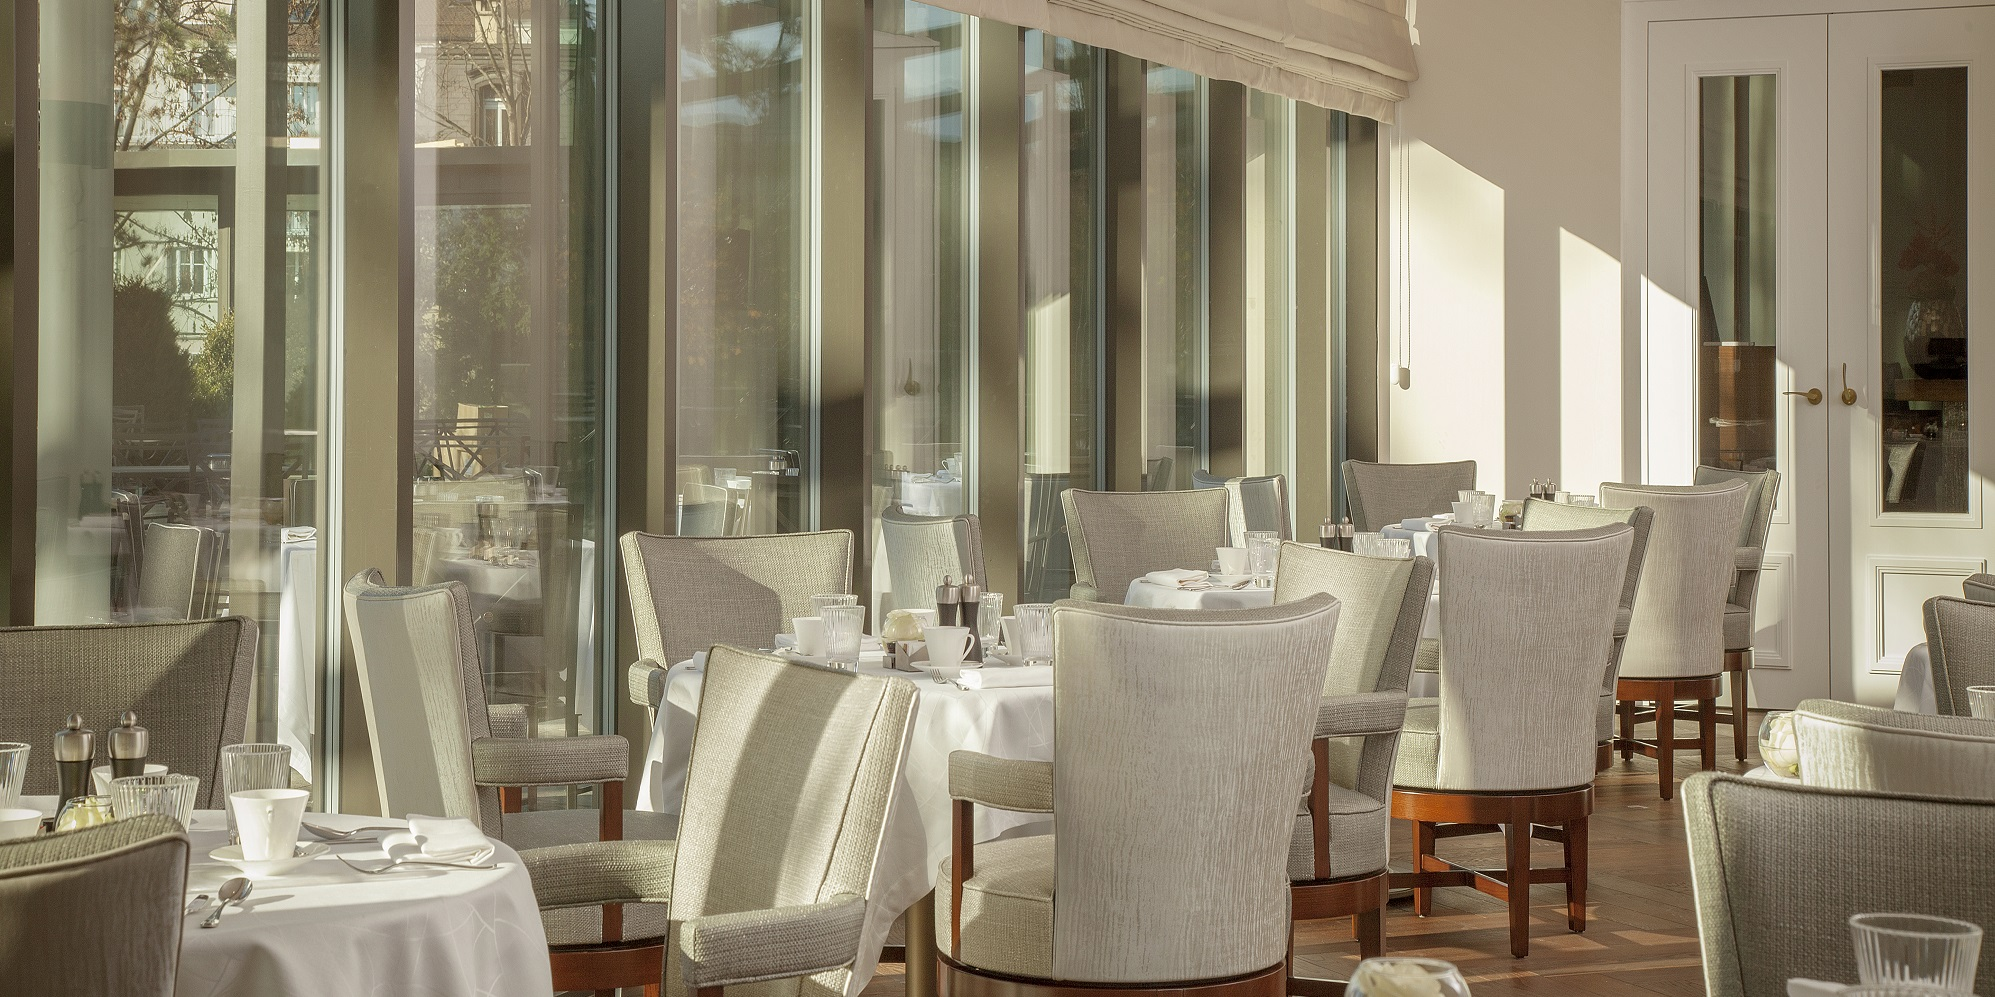 Brunch Brasserie du Royal Savoy (1006 Lausanne)